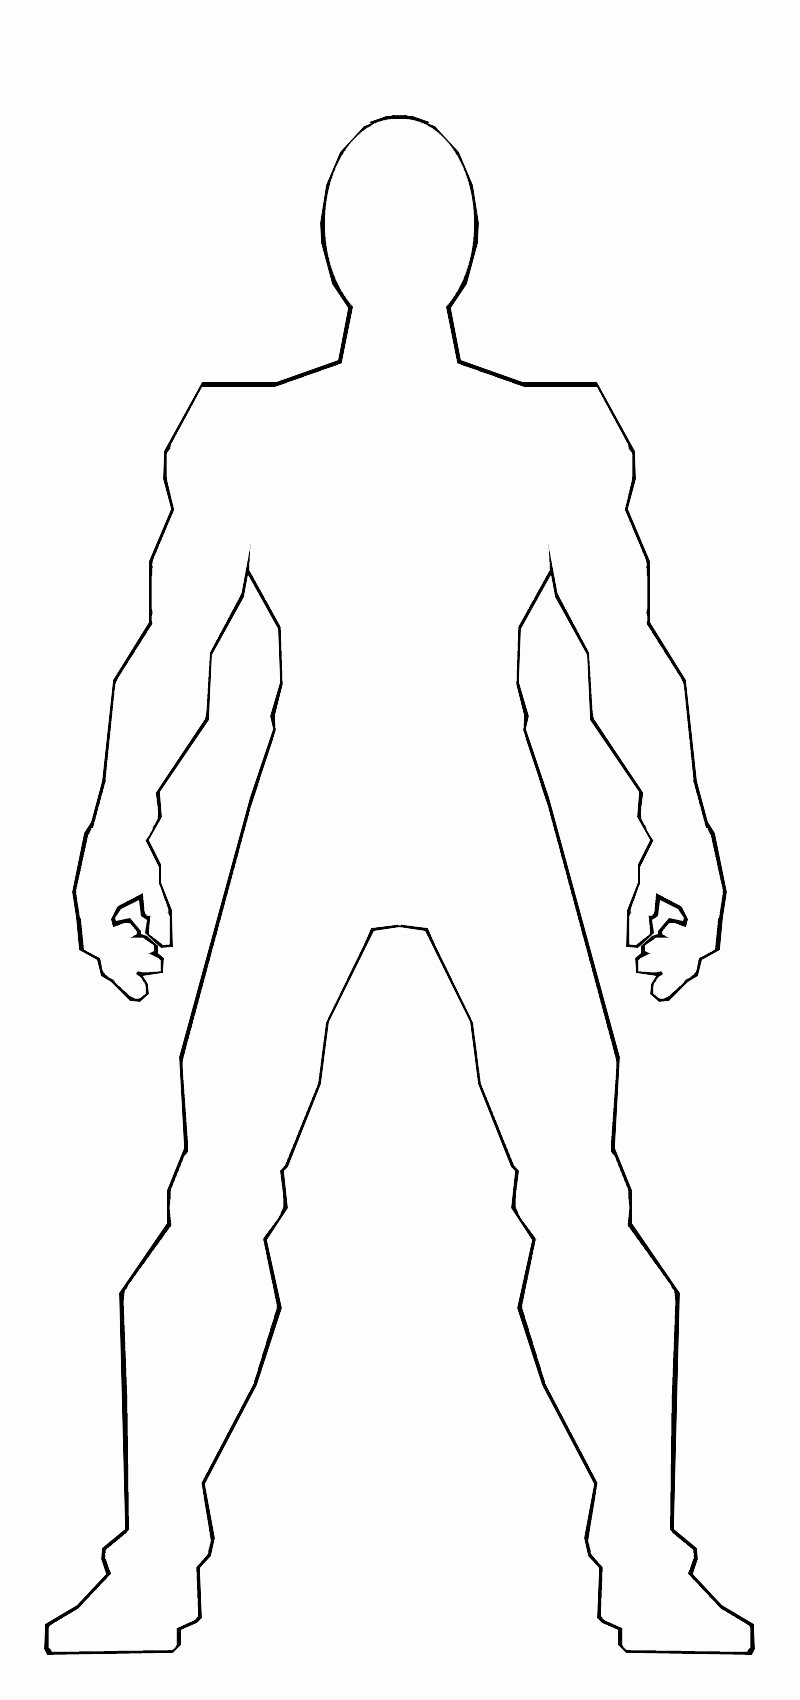 Blank Male Body Template Luxury Male Body Template by Ss209 On Deviantart